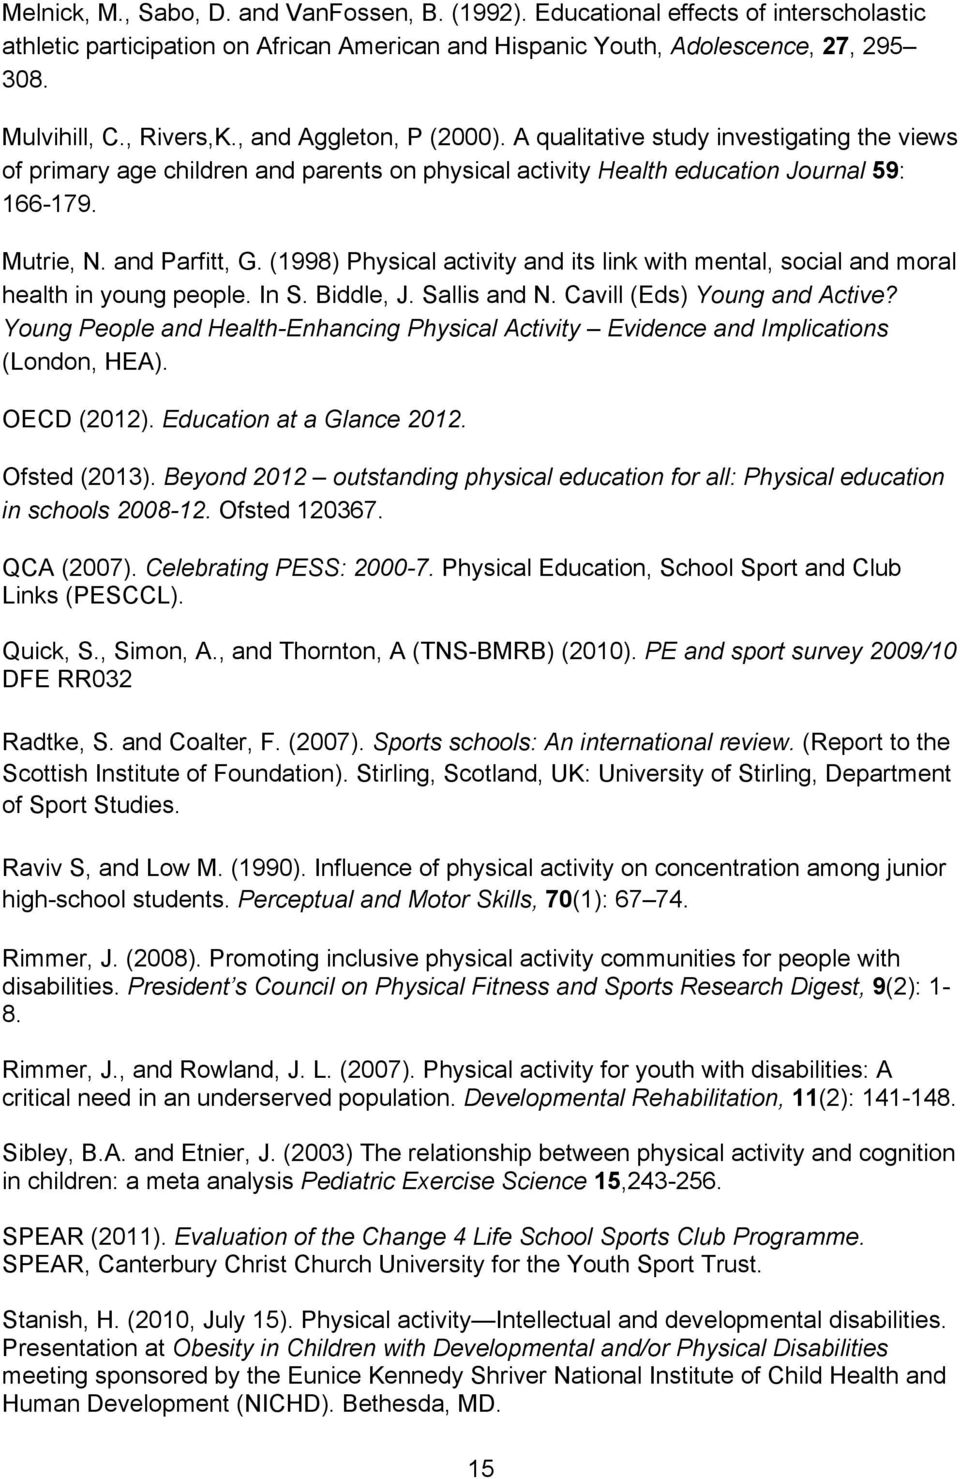 (1998) Physical activity and its link with mental, social and moral health in young people. In S. Biddle, J. Sallis and N. Cavill (Eds) Young and Active?